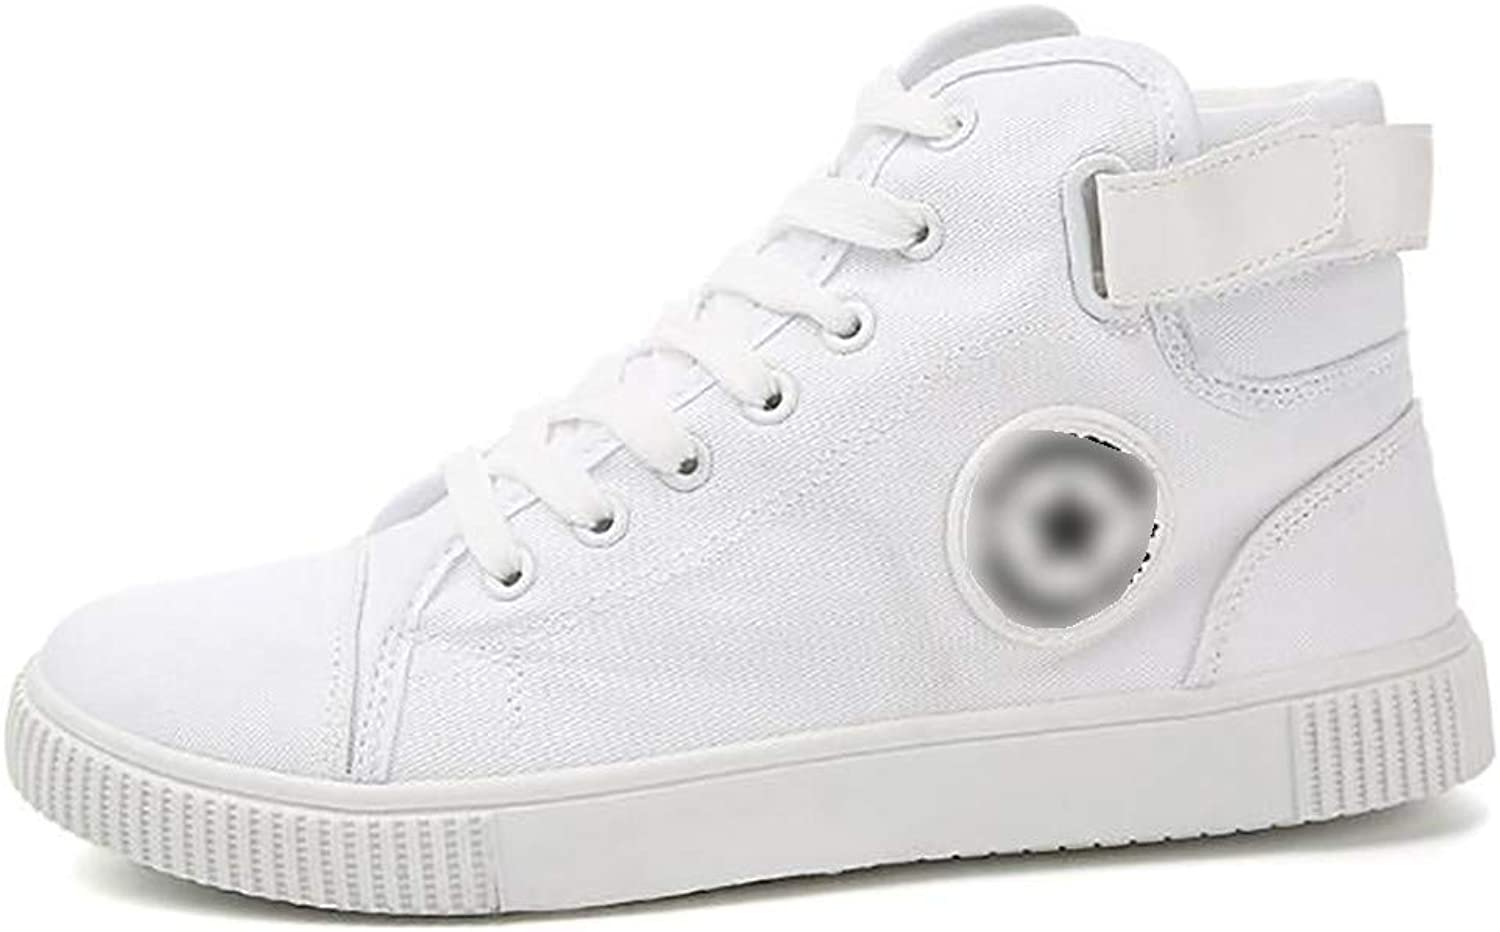 RcnryMen's casual shoes, breathable woven canvas shoes